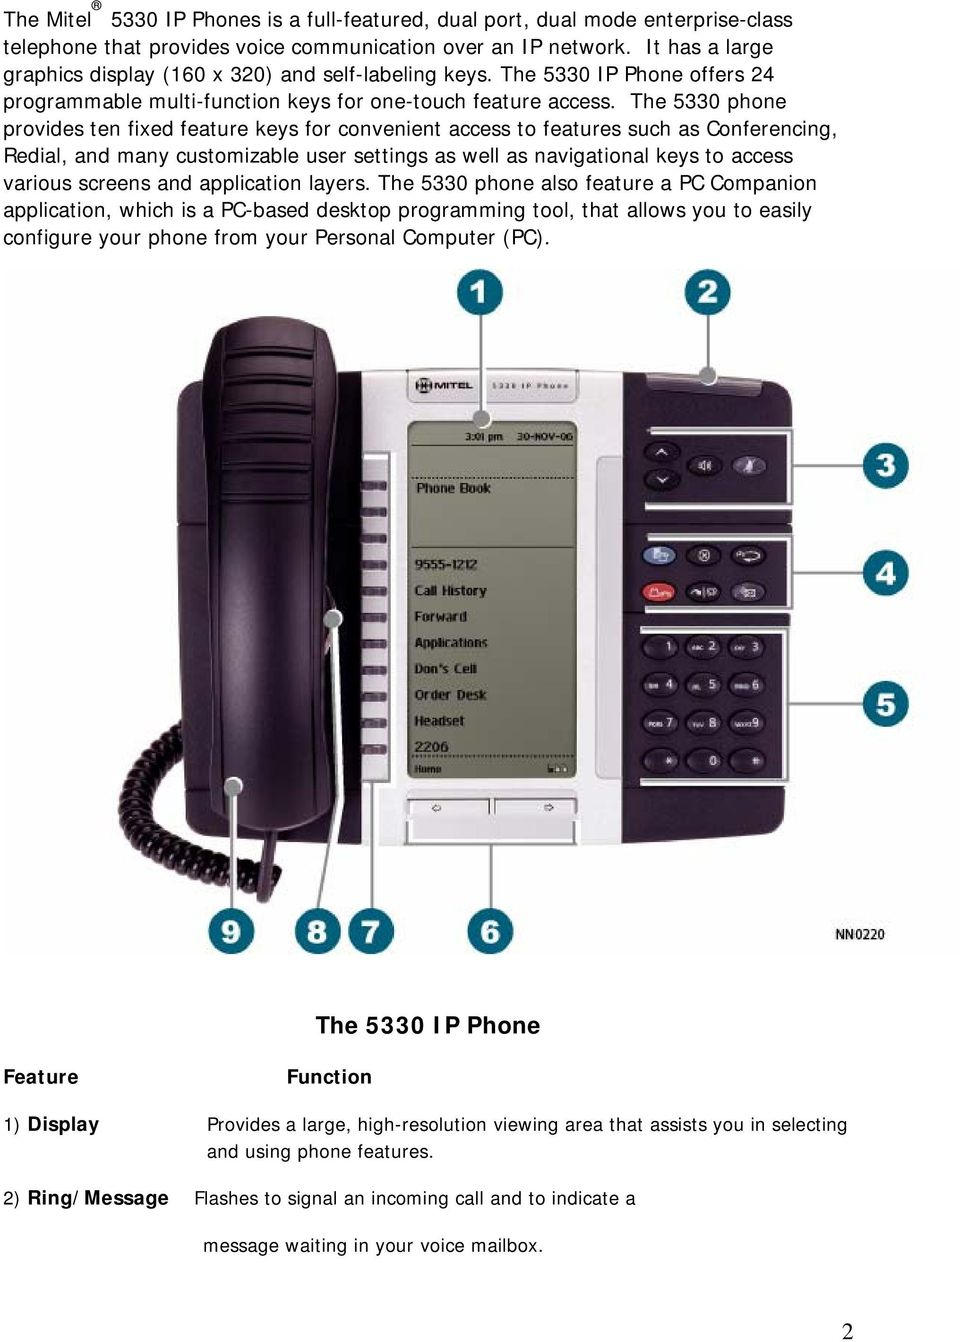 The 5330 phone provides ten fixed feature keys for convenient access to features such as Conferencing, Redial, and many customizable user settings as well as navigational keys to access various